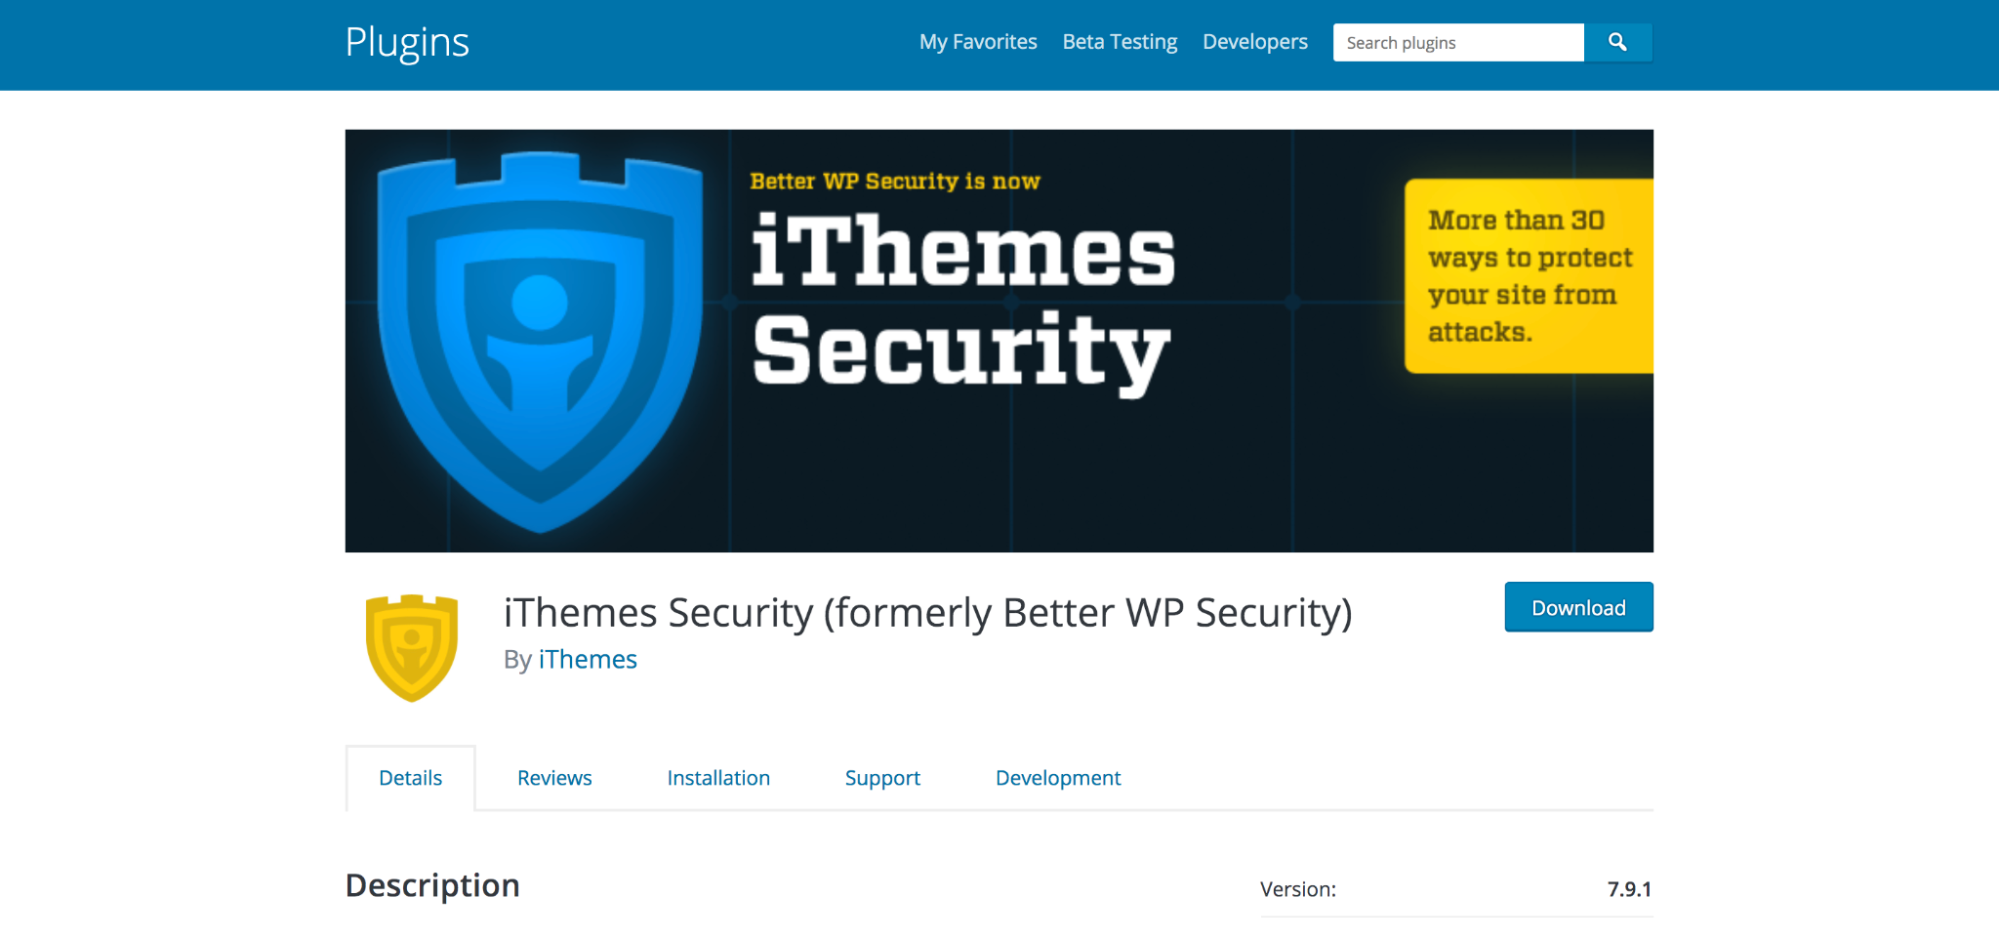 iThemes Security plugin page in the WordPress repository